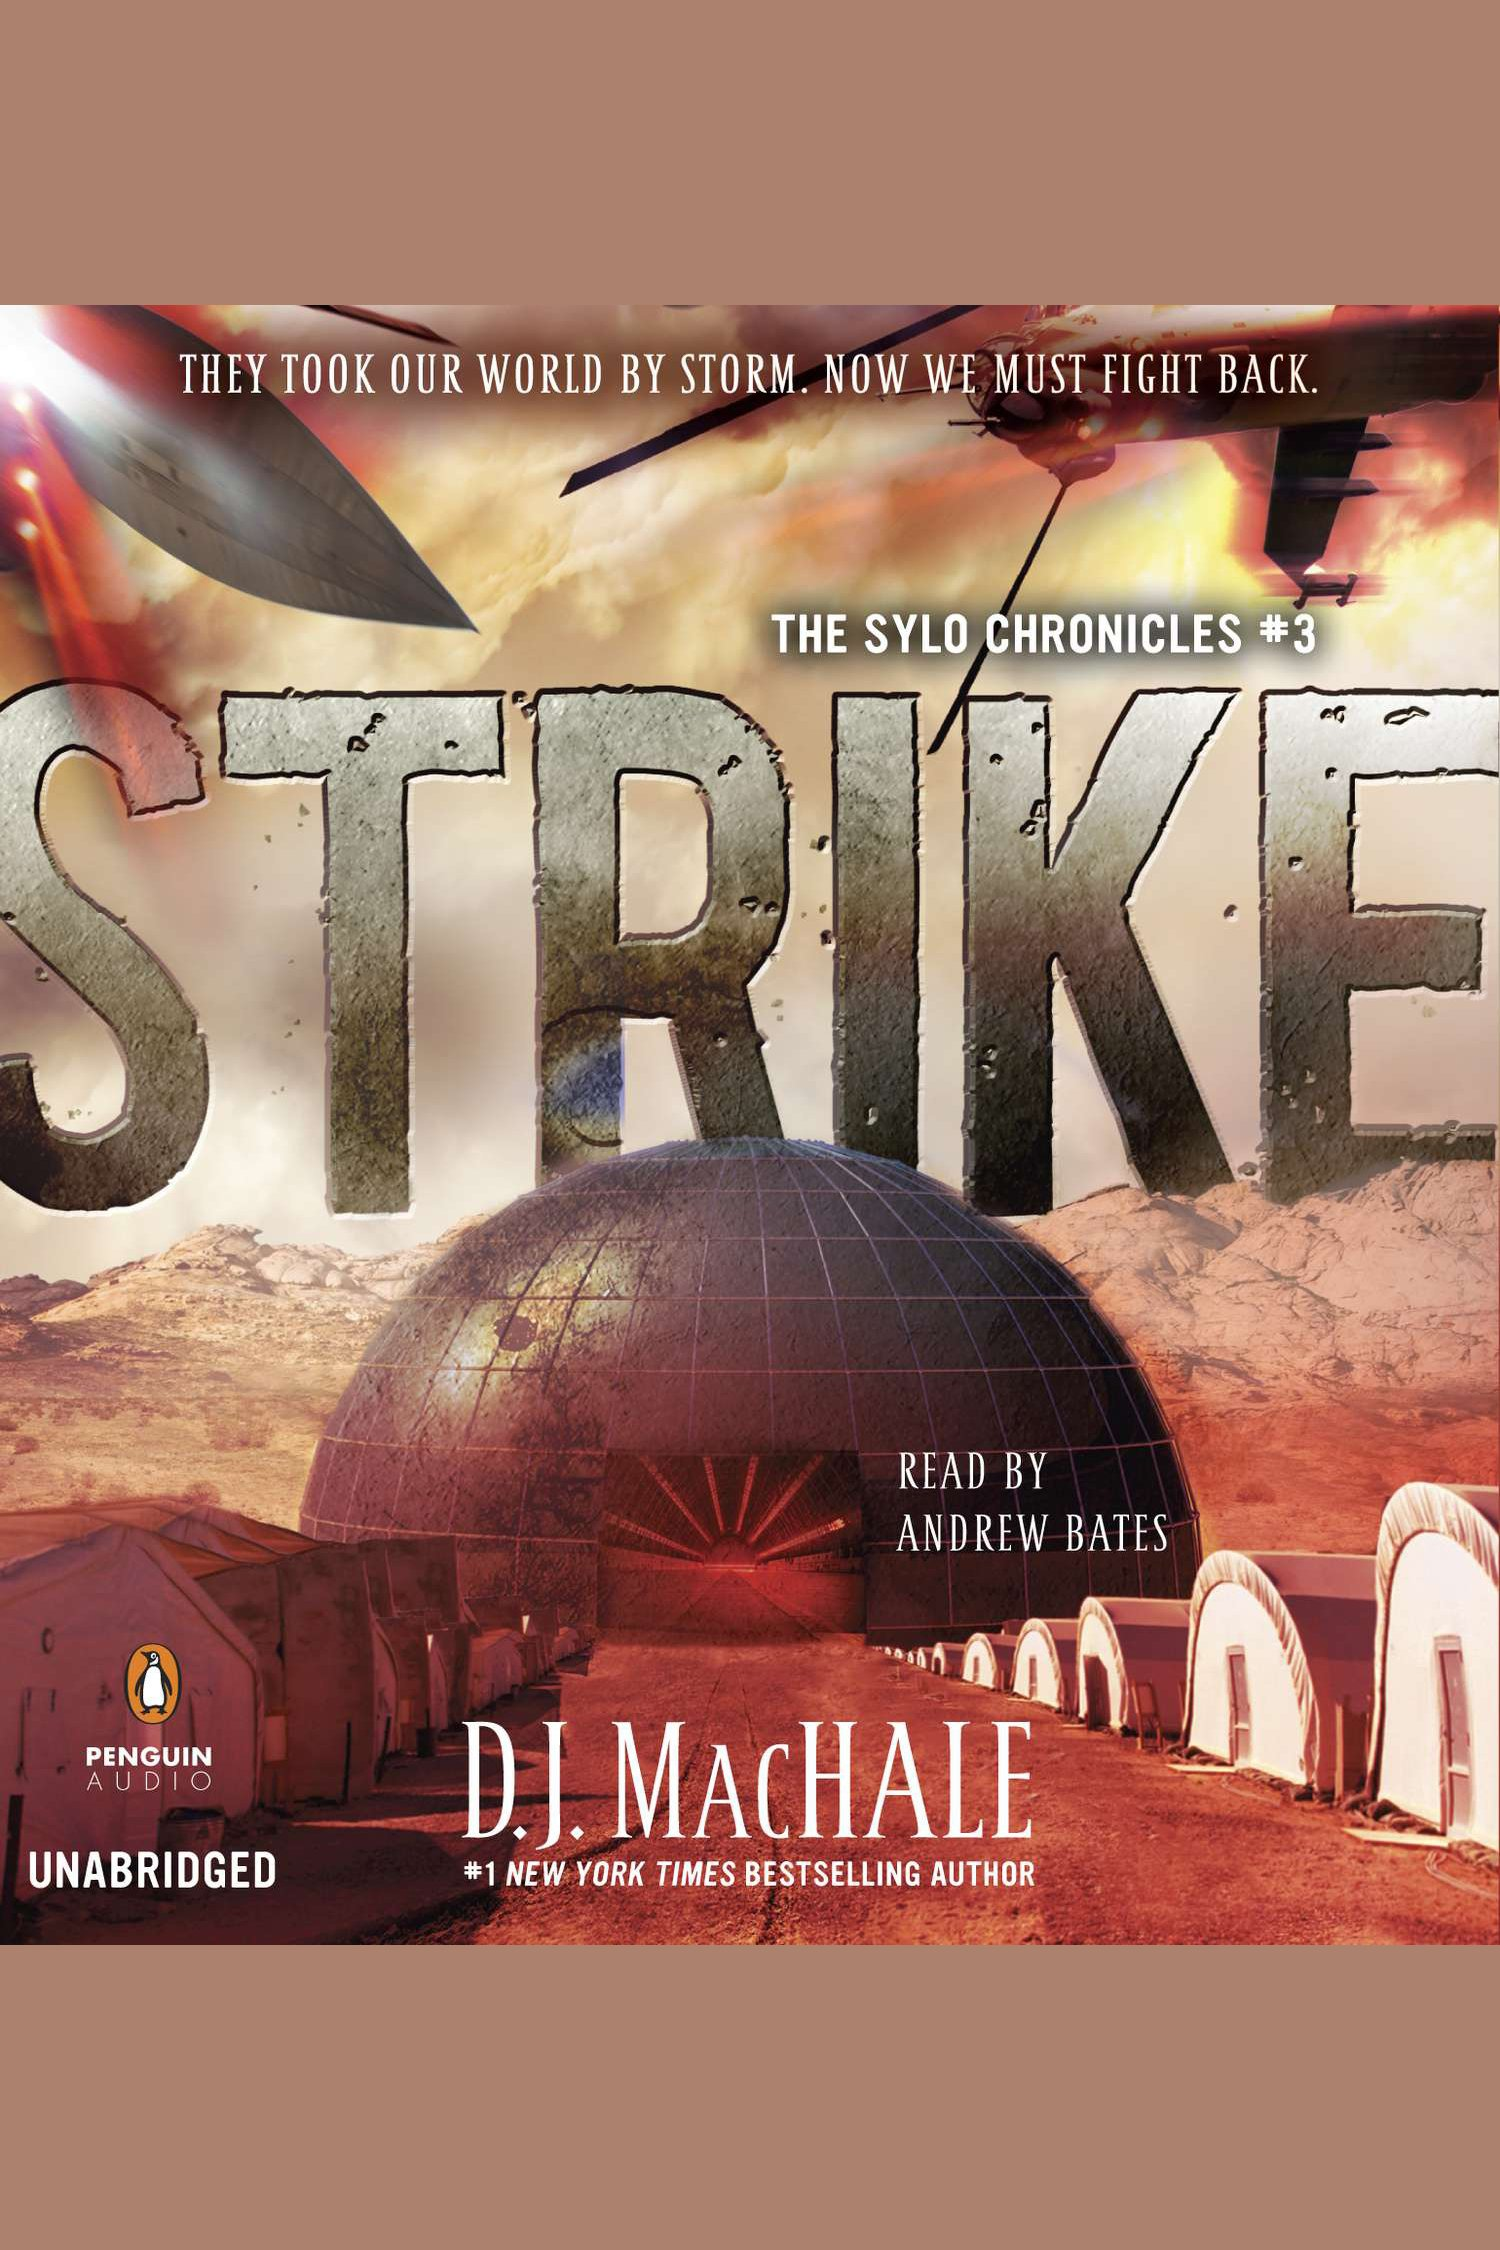 Strike cover image